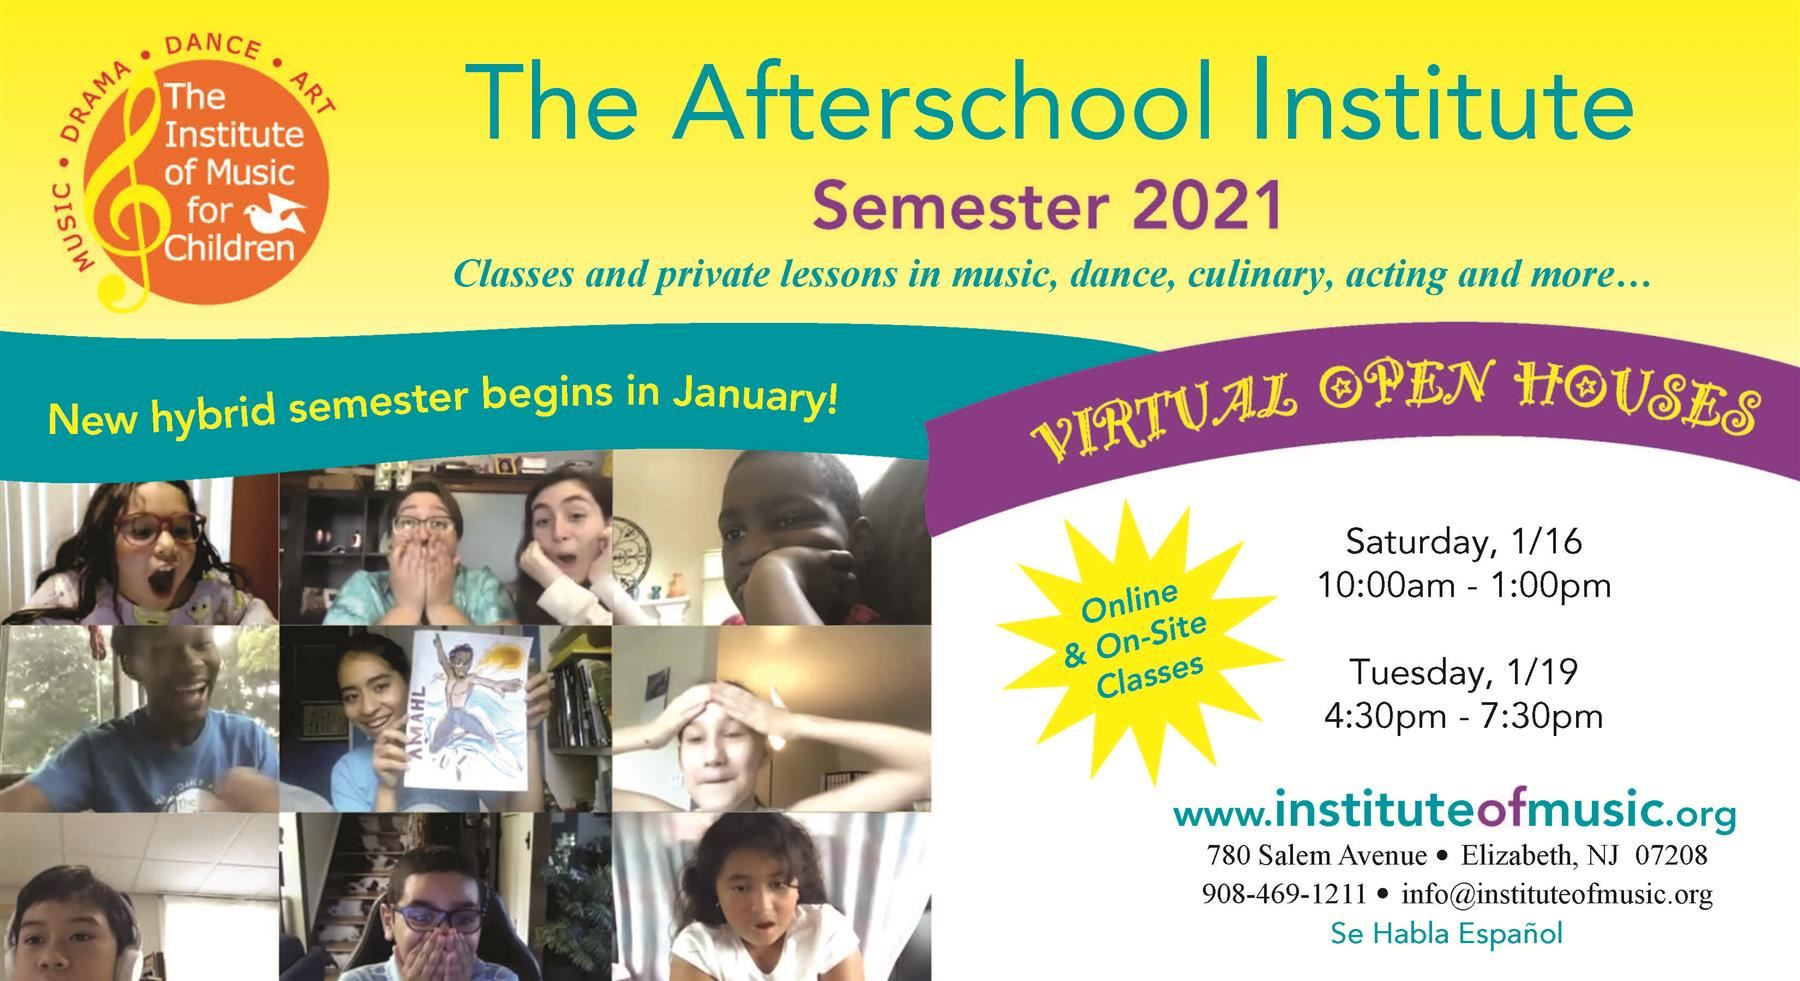 The Afterschool Institute Semester 2021